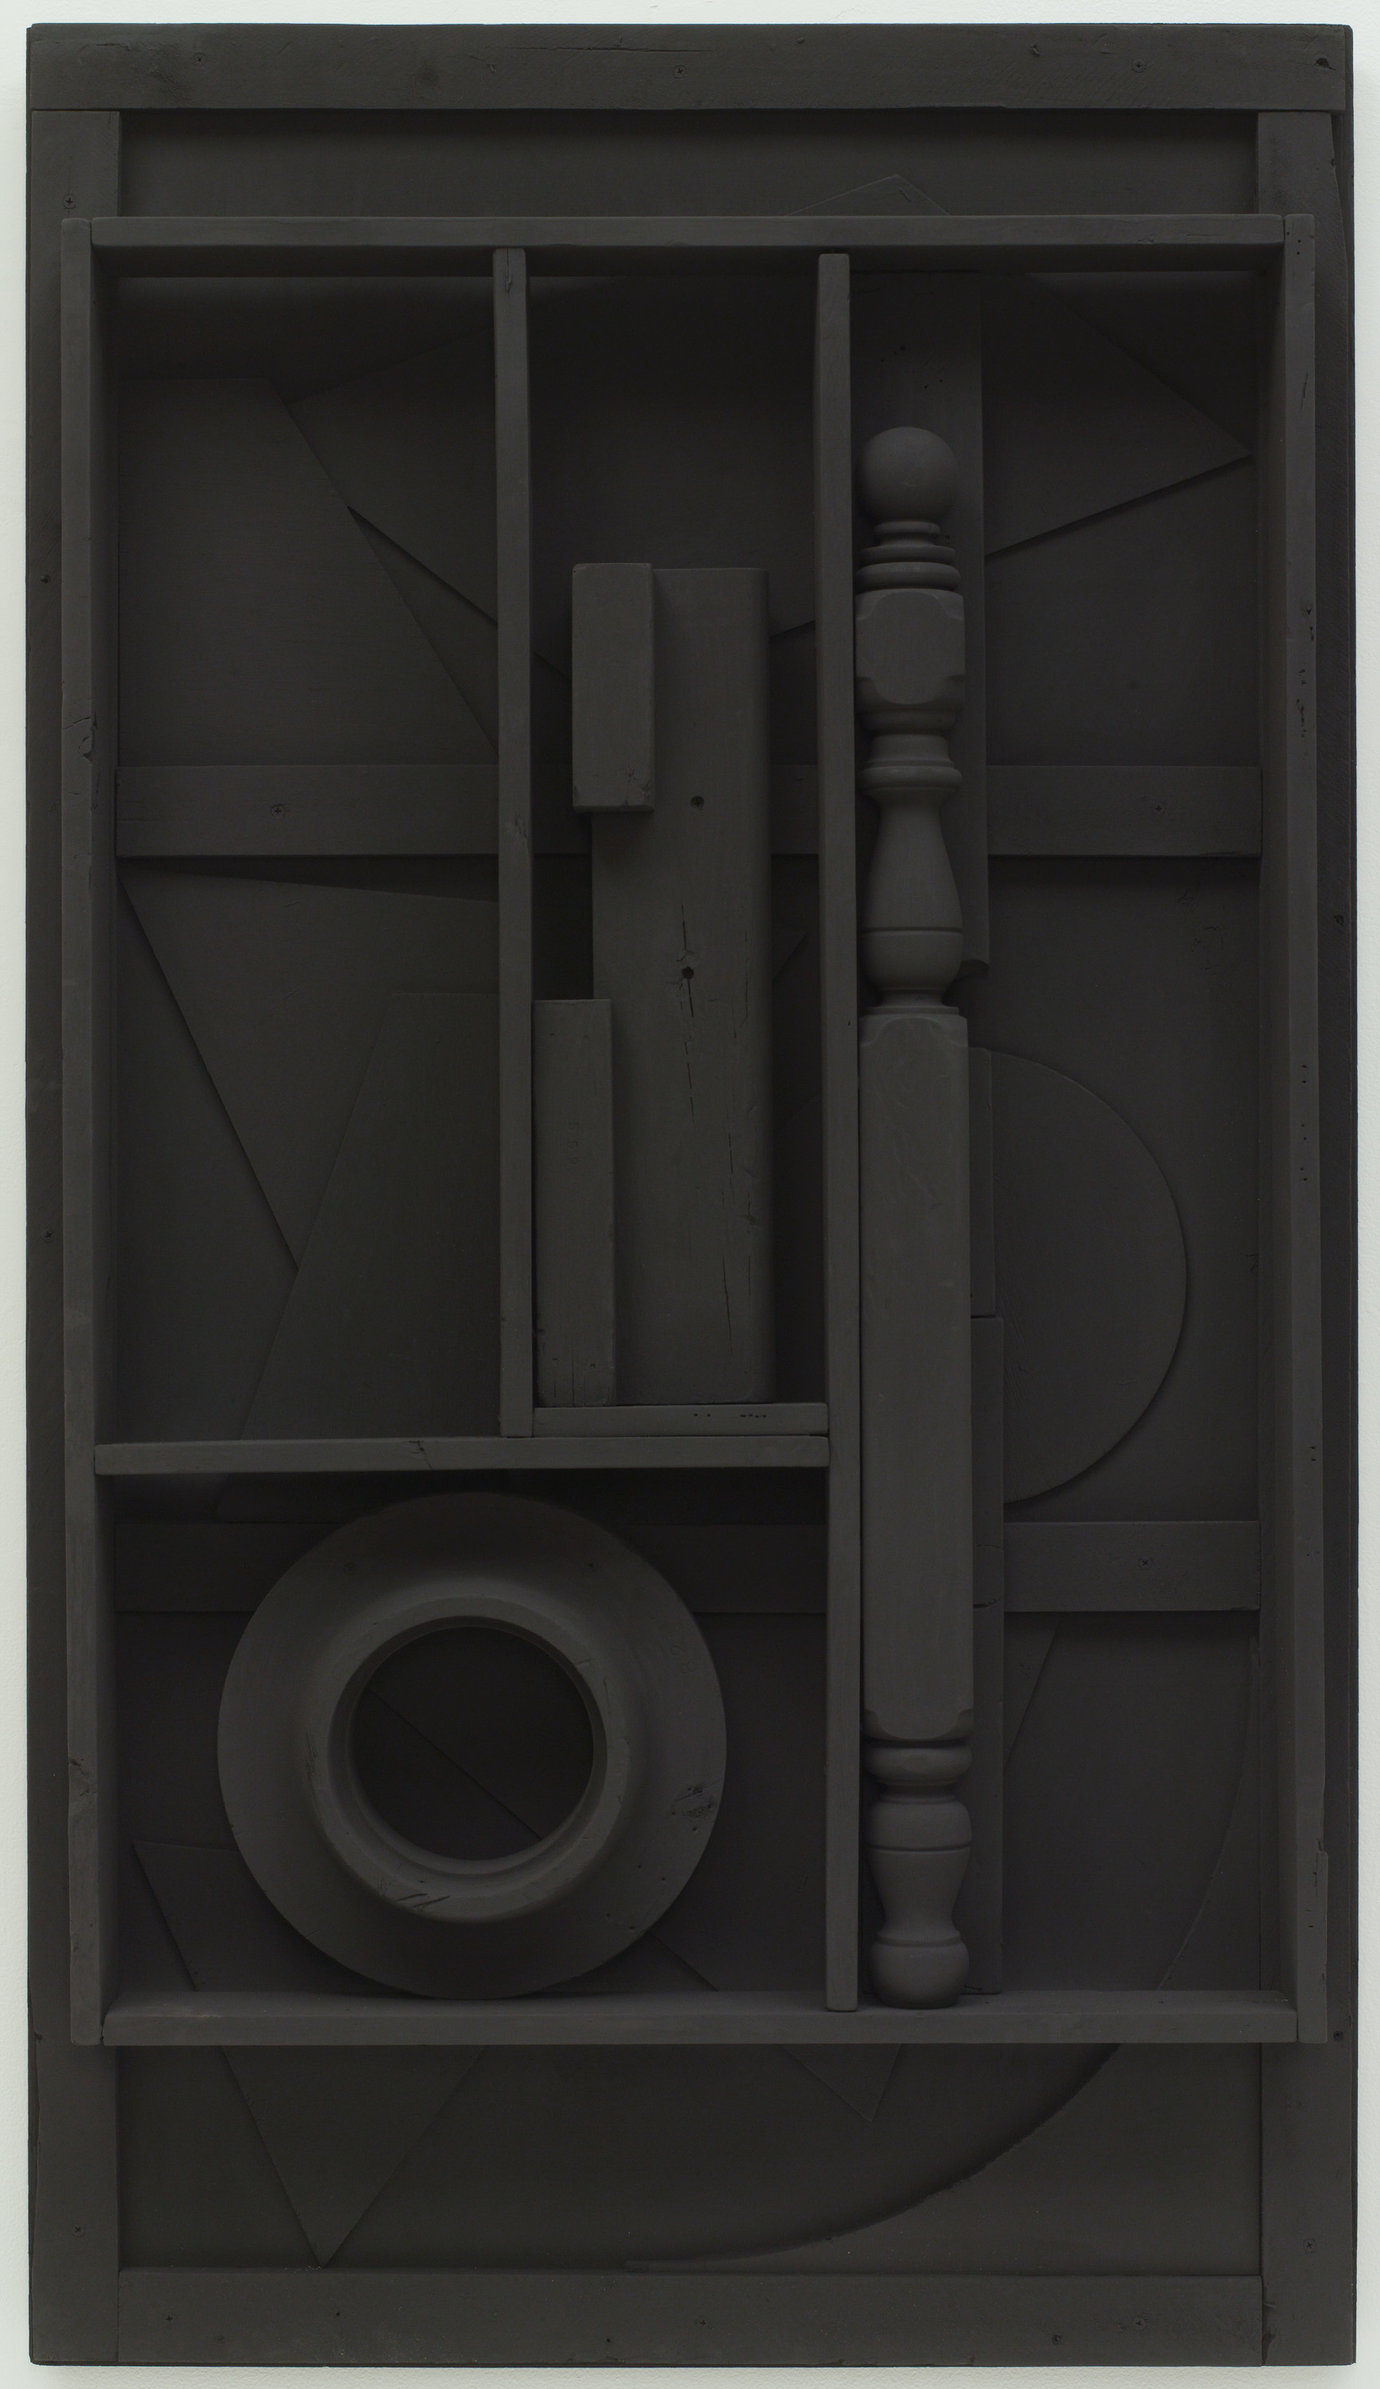 ", 1976-78. wood painted black, 60-1/2"" x 34-1/4"" x 5-1/2"" (153.7 cm x 87 cm x 14 cm)."